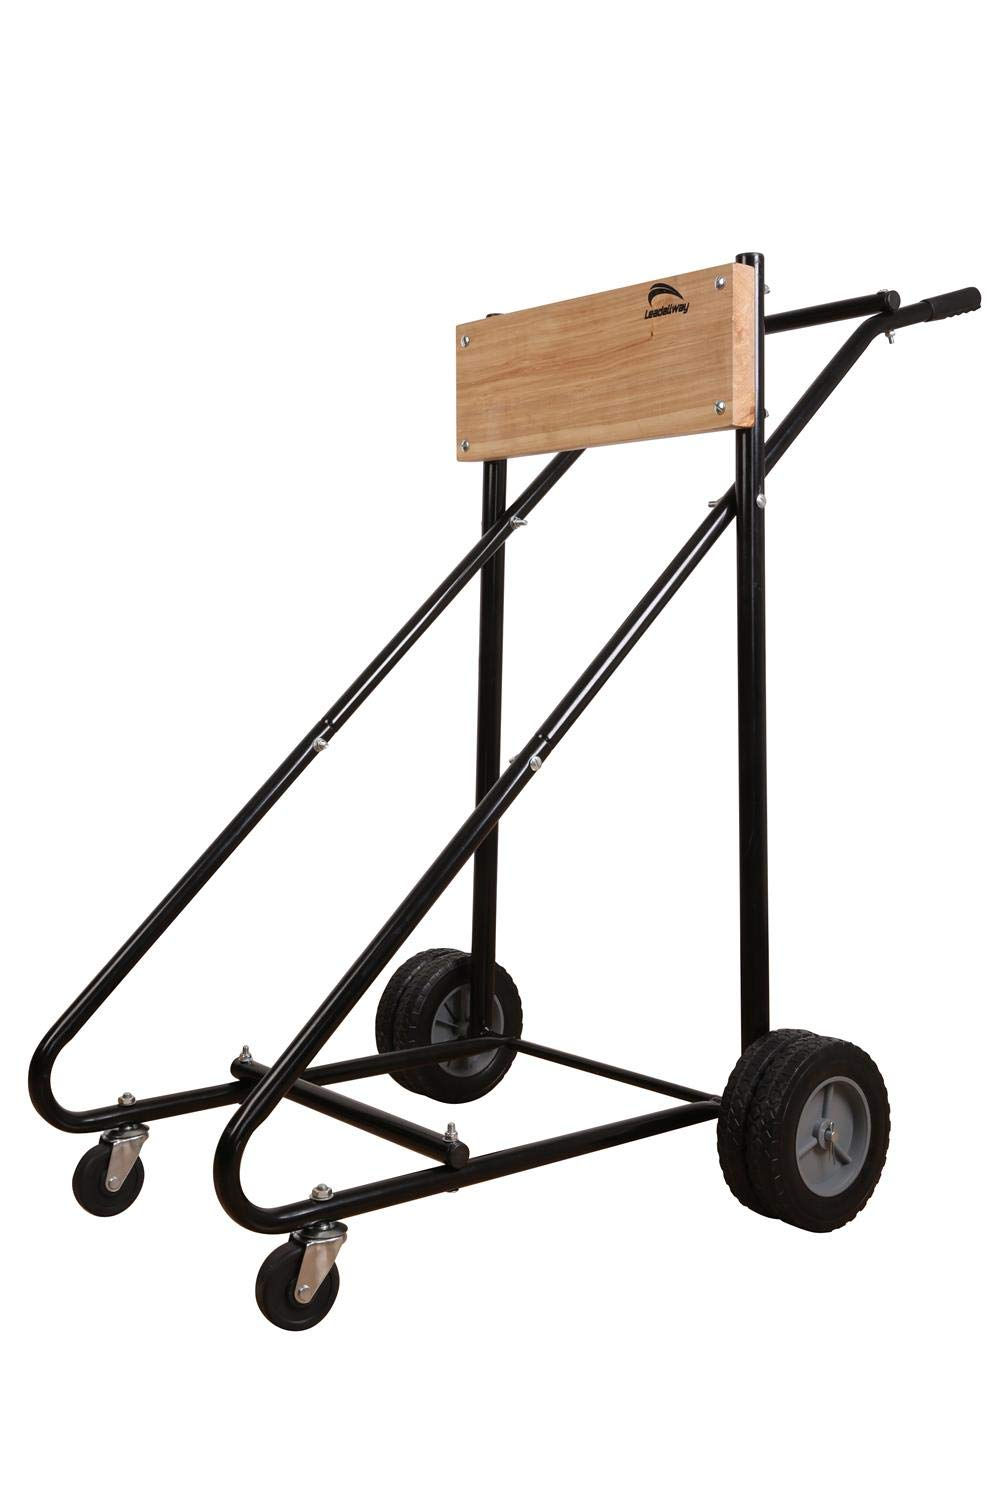 LEADALLWAY Outboard Boat Motor Carrier-315LBS Motor Cart with 4 Rubber Casters and Storage by LEADALLWAY